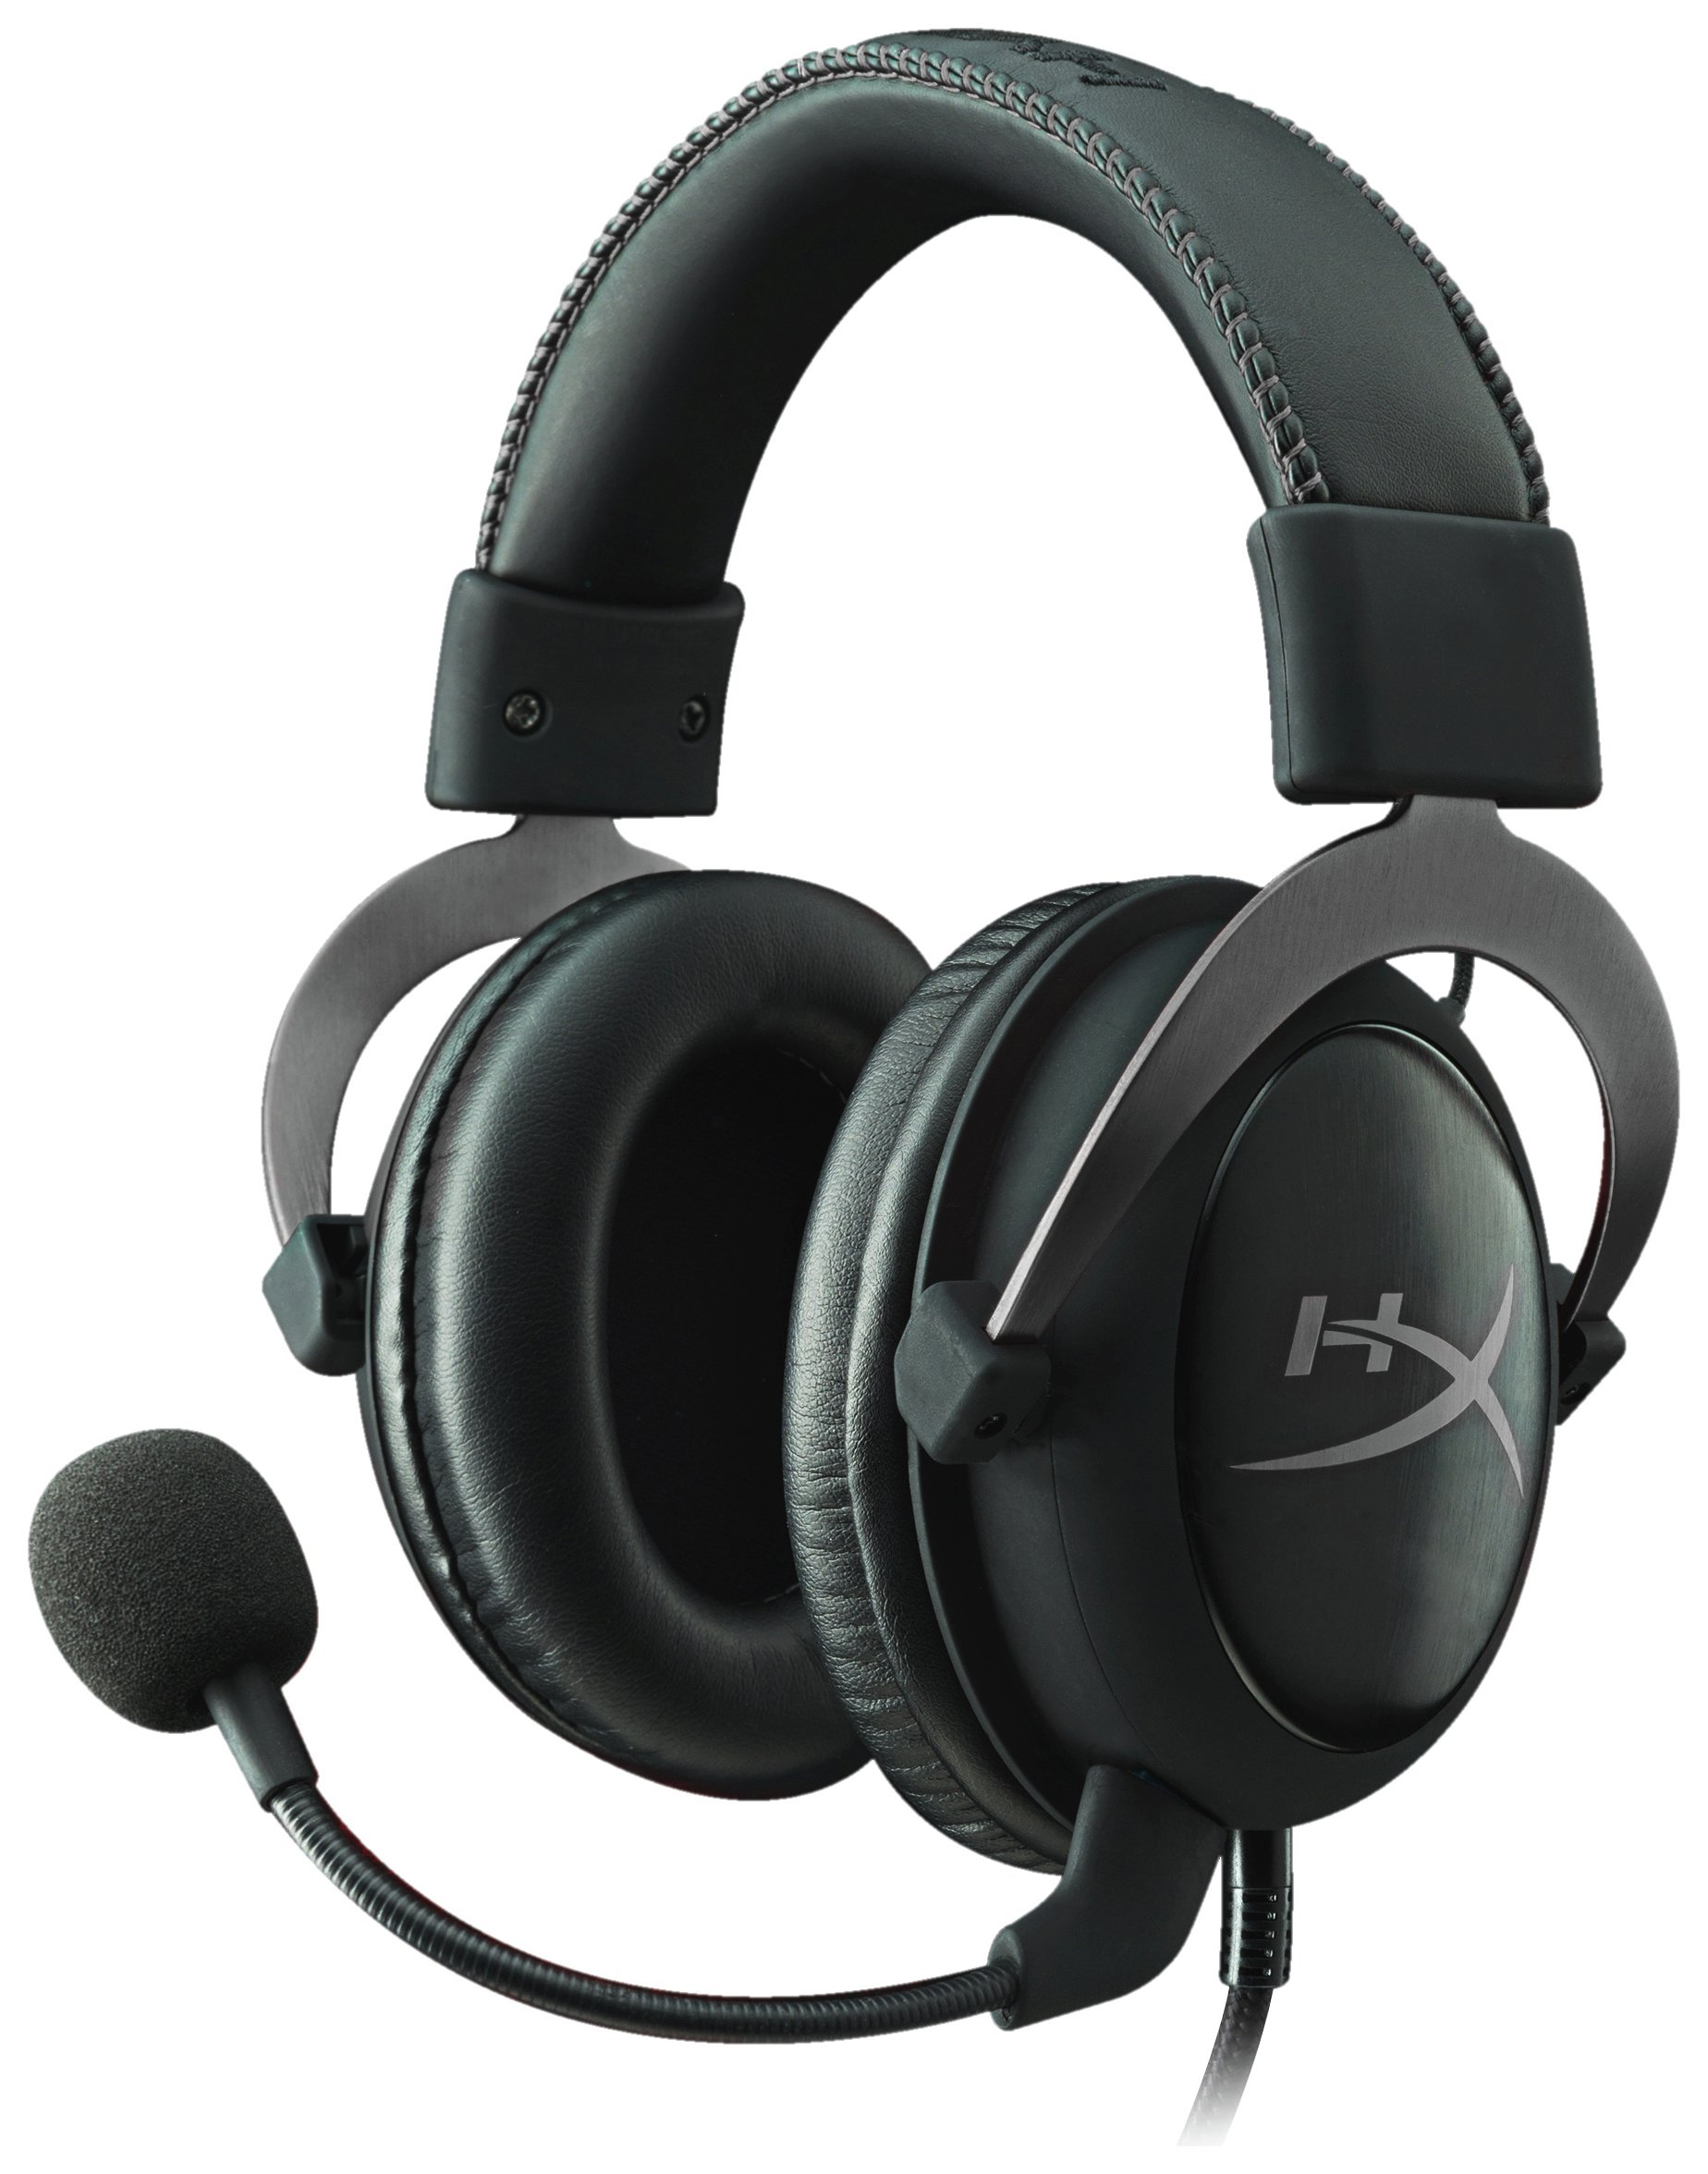 Image of HyperX Cloud II Gaming Headset PC/PS4/Mac/Mobile - Gun Metal